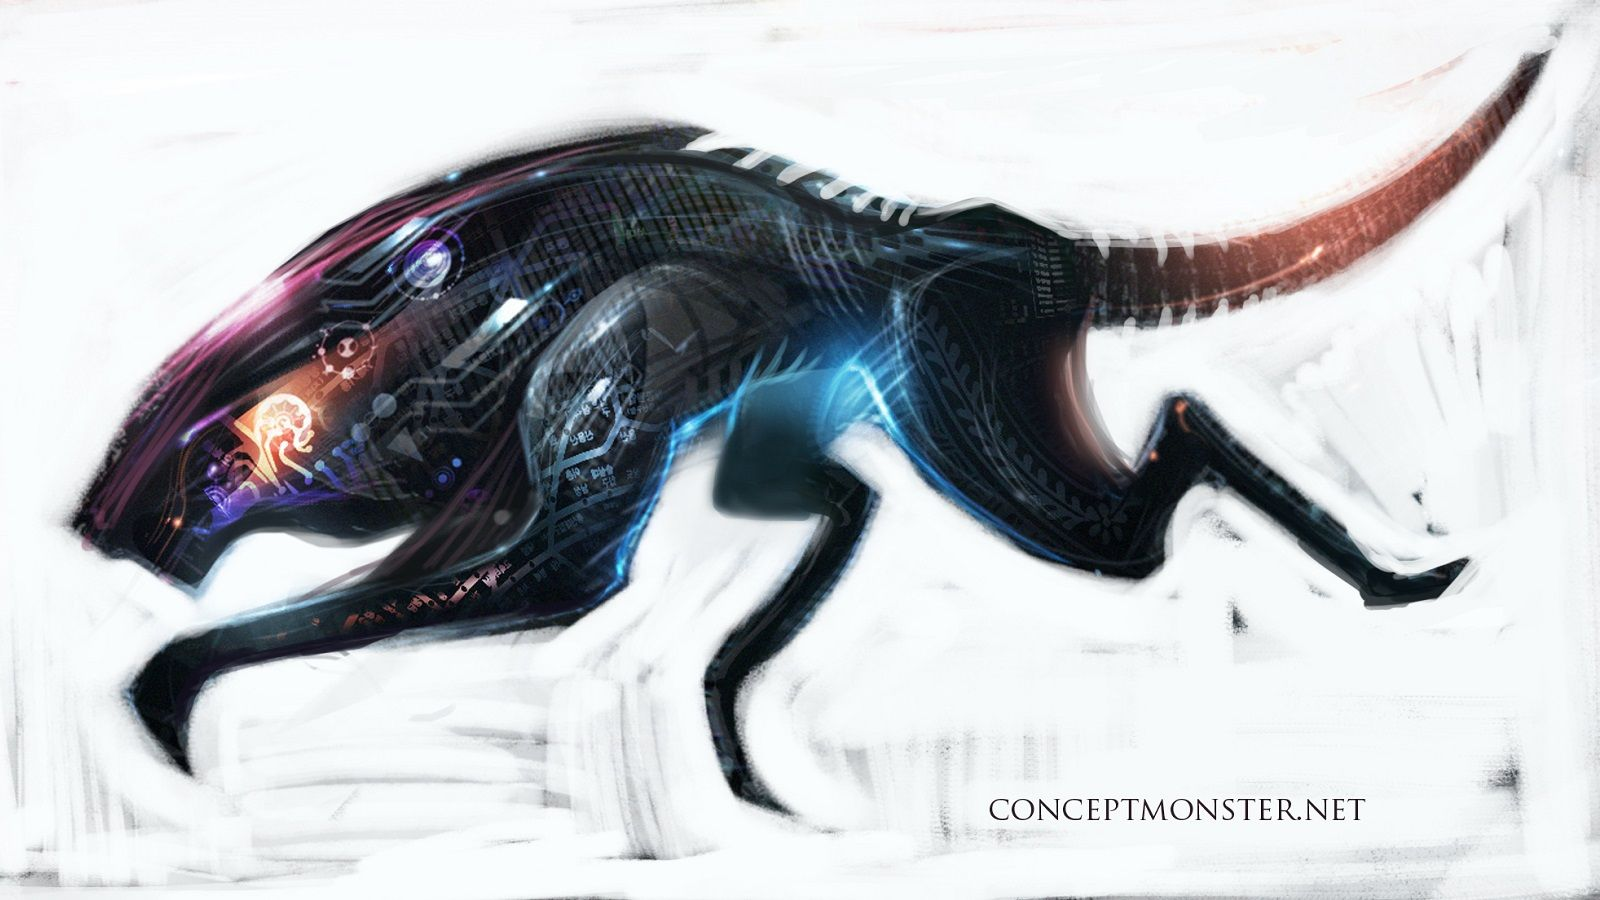 Fond Ecran Hd Wallpaper 560 All Images Alien Concept Art Creature Art Creature Picture